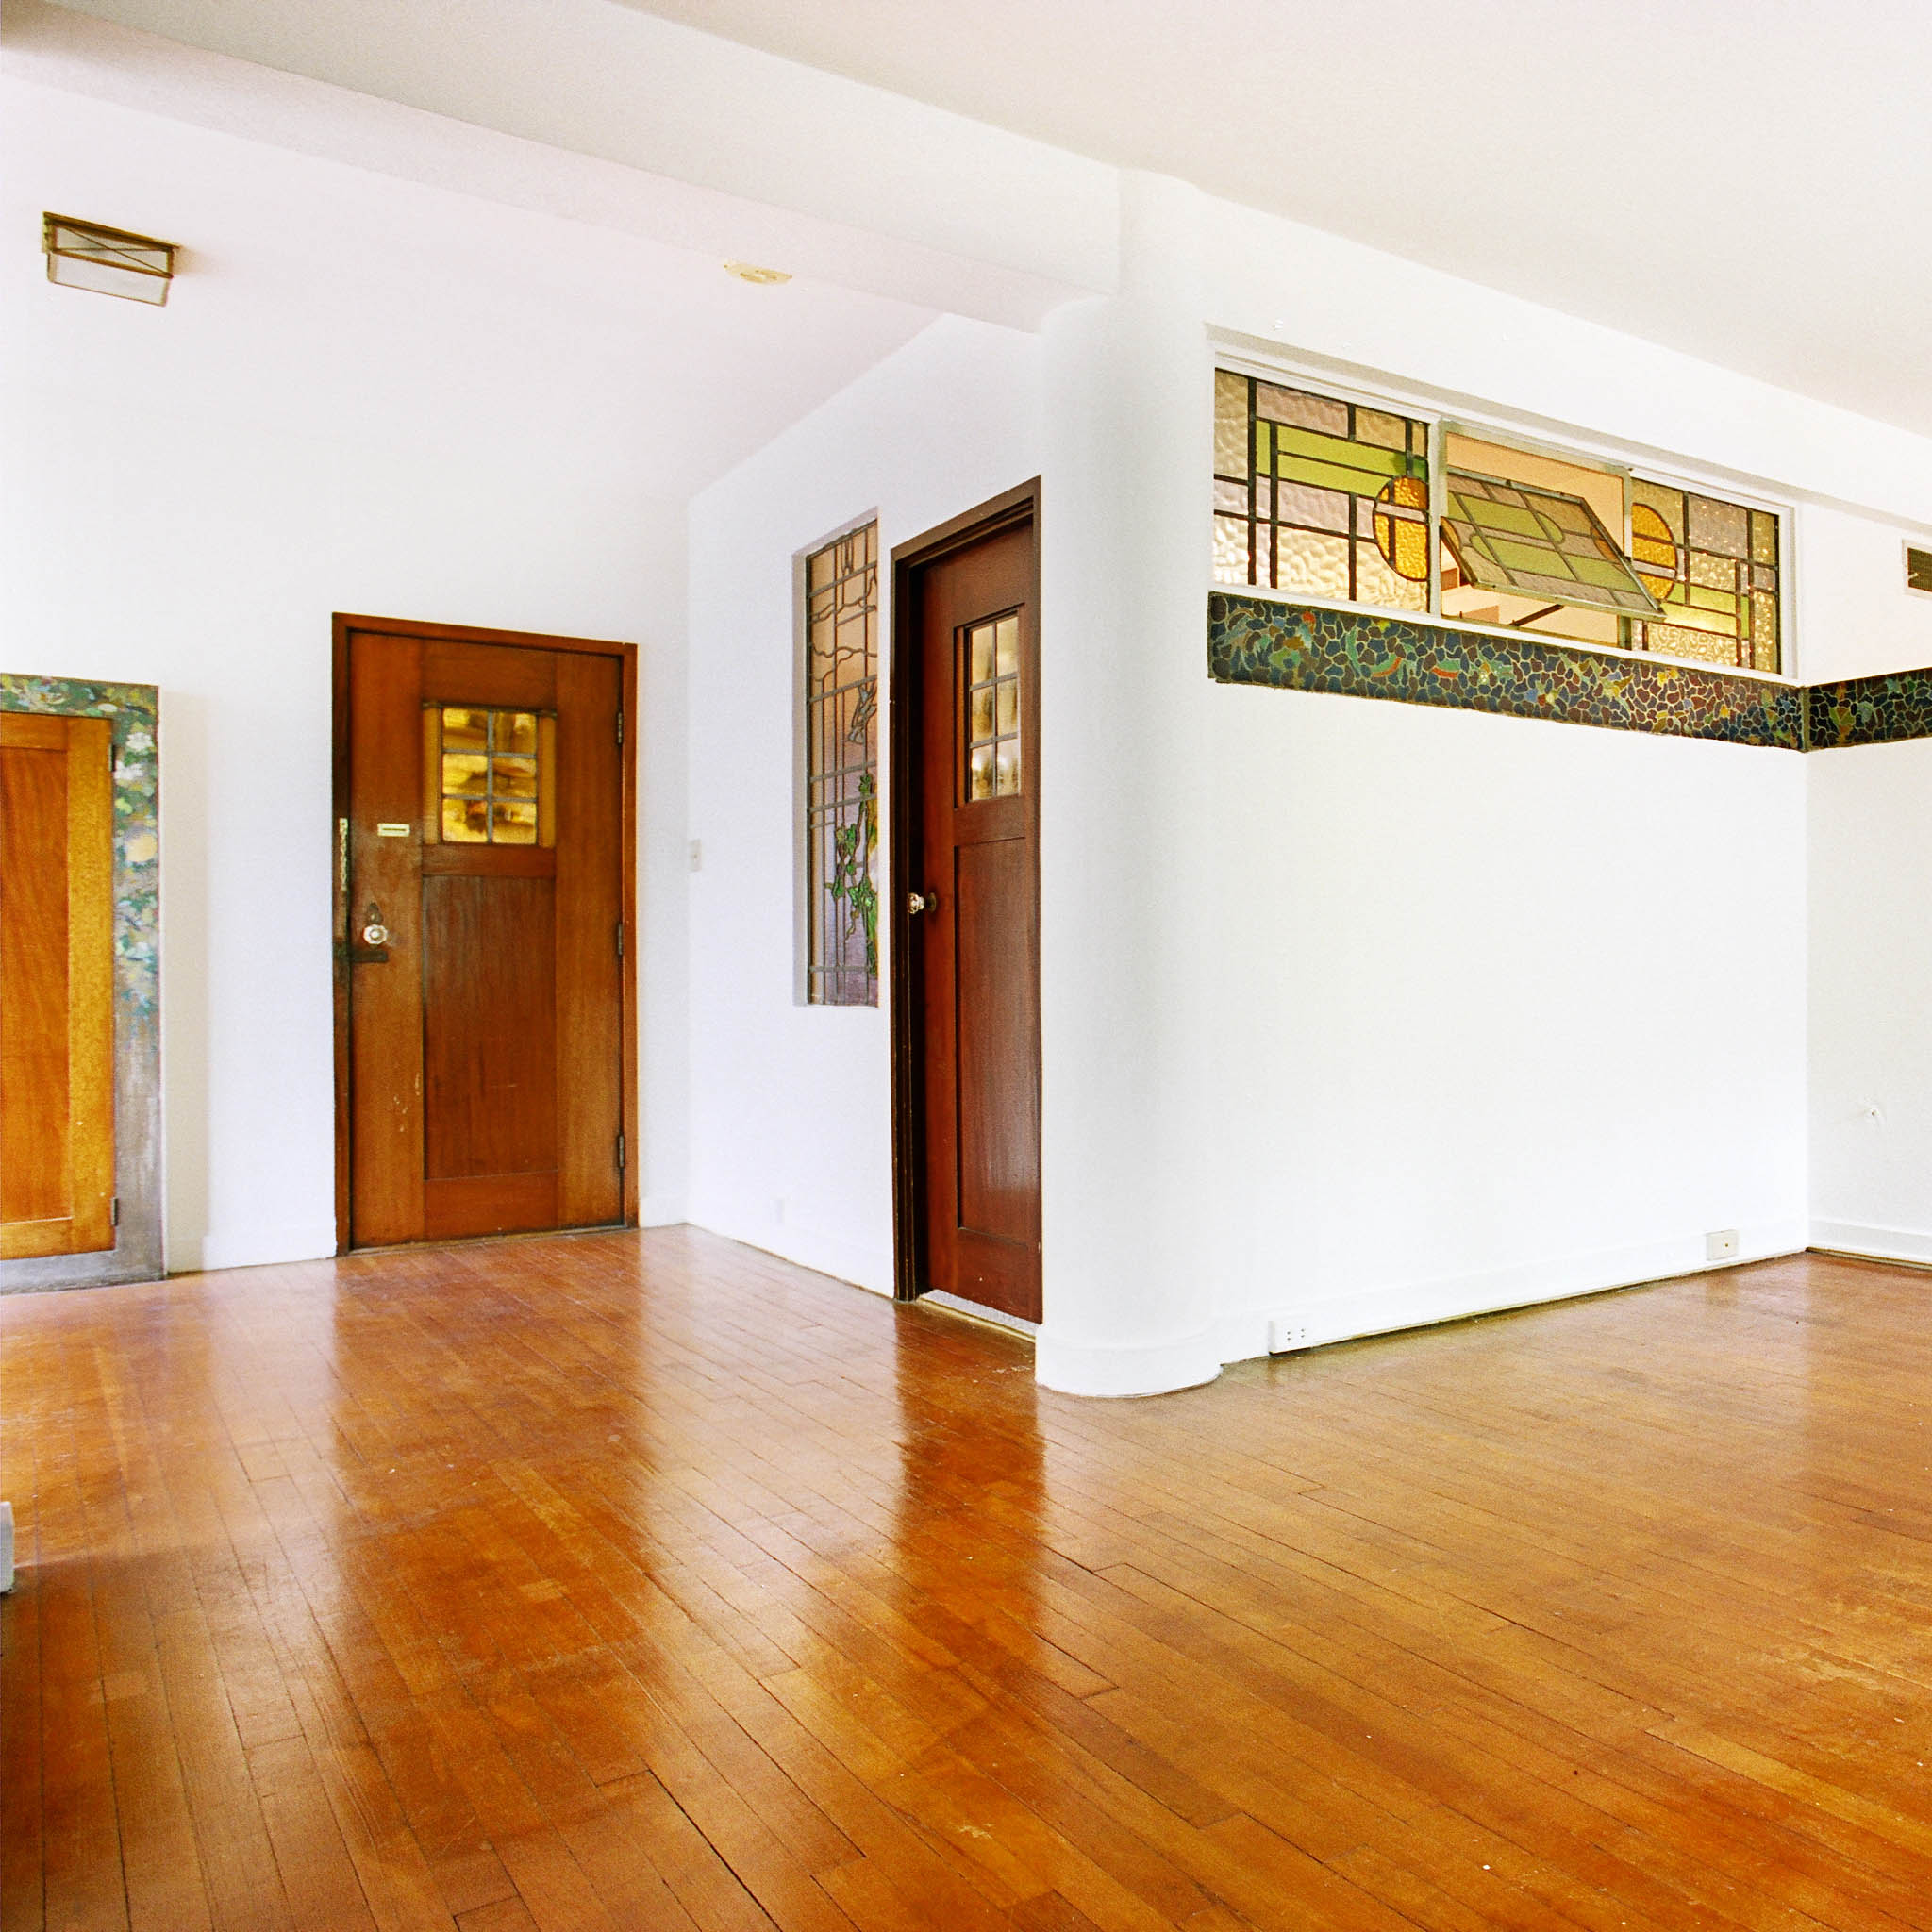 interior of 340 S. Highland Ave, Apt. 3A 1